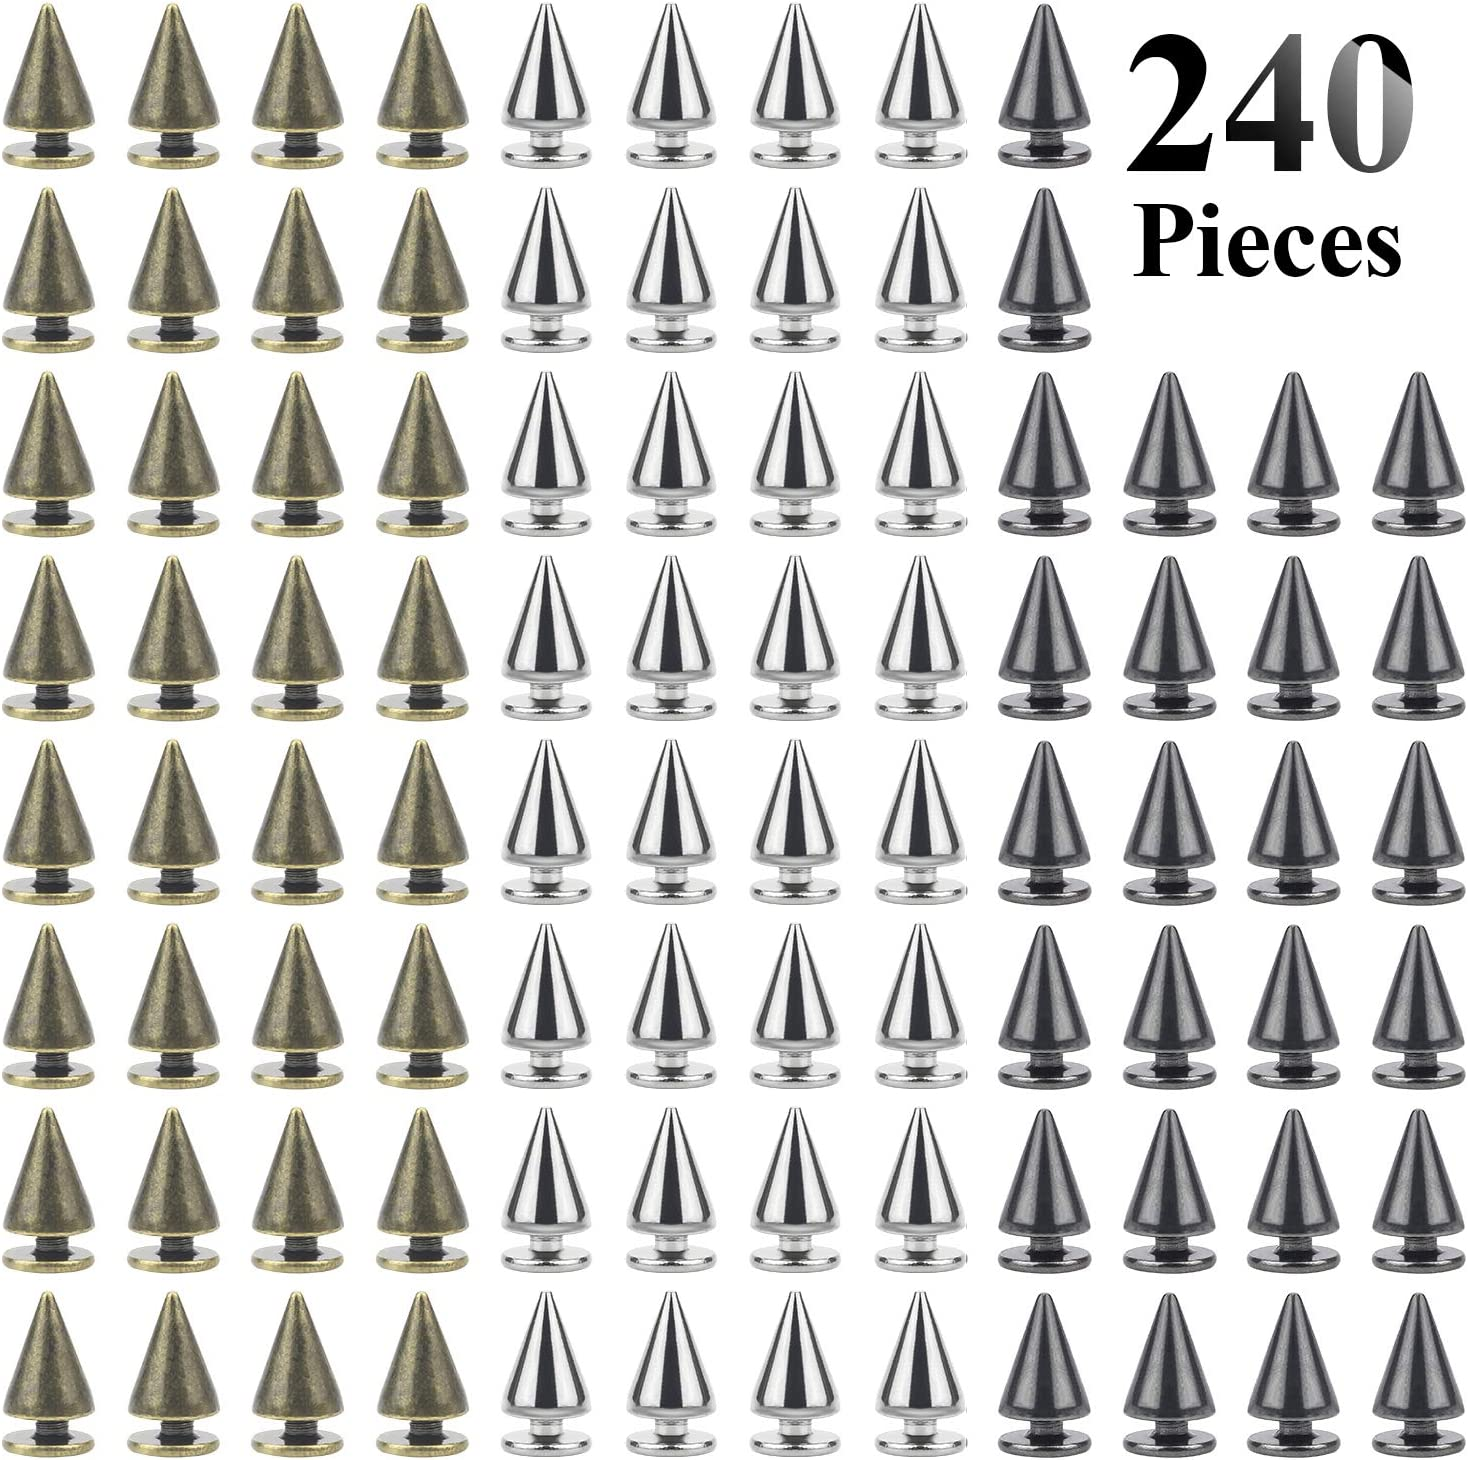 Swpeet 110 Pairs Gold 7mm x 9.5mm Bullet Cone Spike and Stud Metal Screw Back for DIY Leather Craft Cool Rivets Punk Stud Coincal Layer